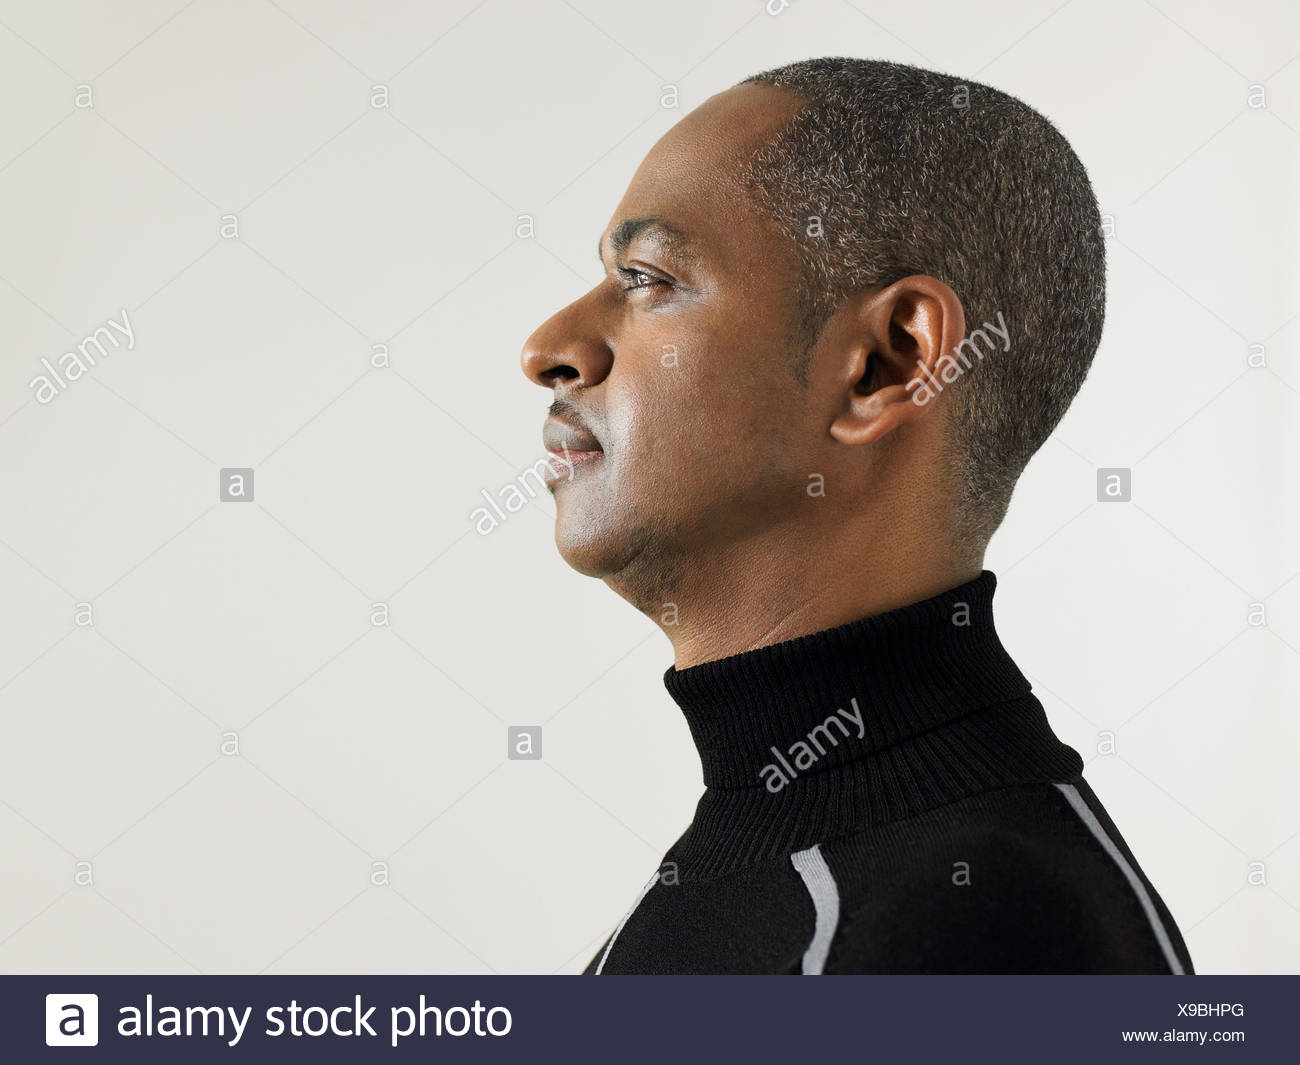 Profile of a mature man - Stock Image